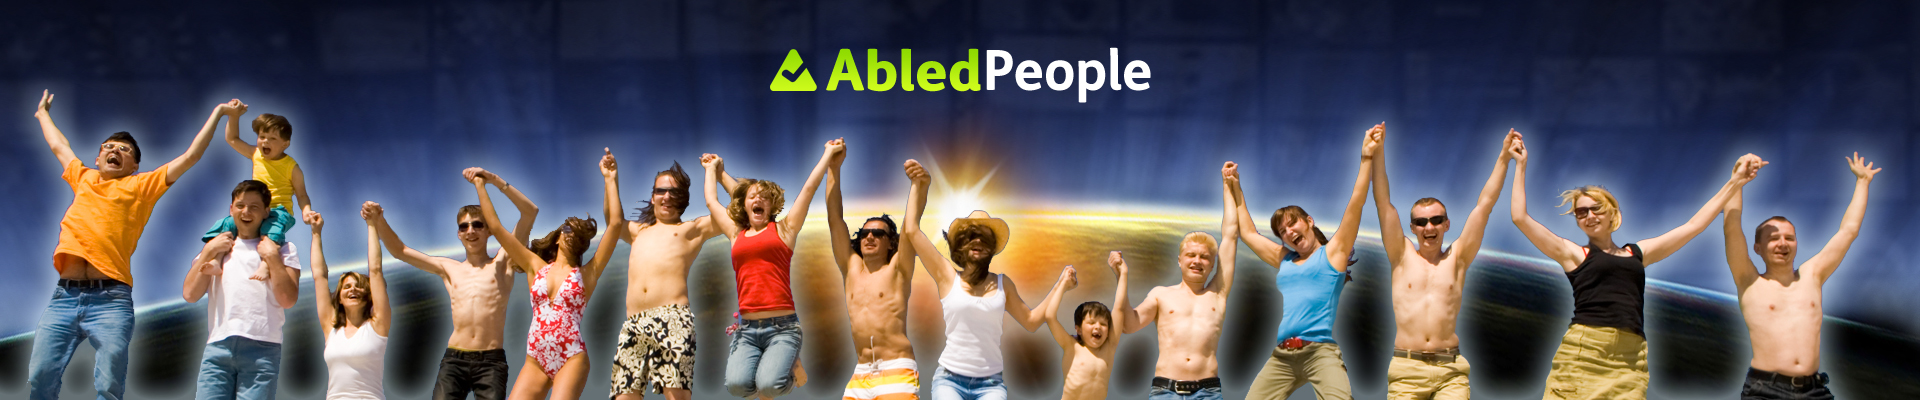 AbledPeople Banner showing a row of people linking hands and jumping in the air at the beach